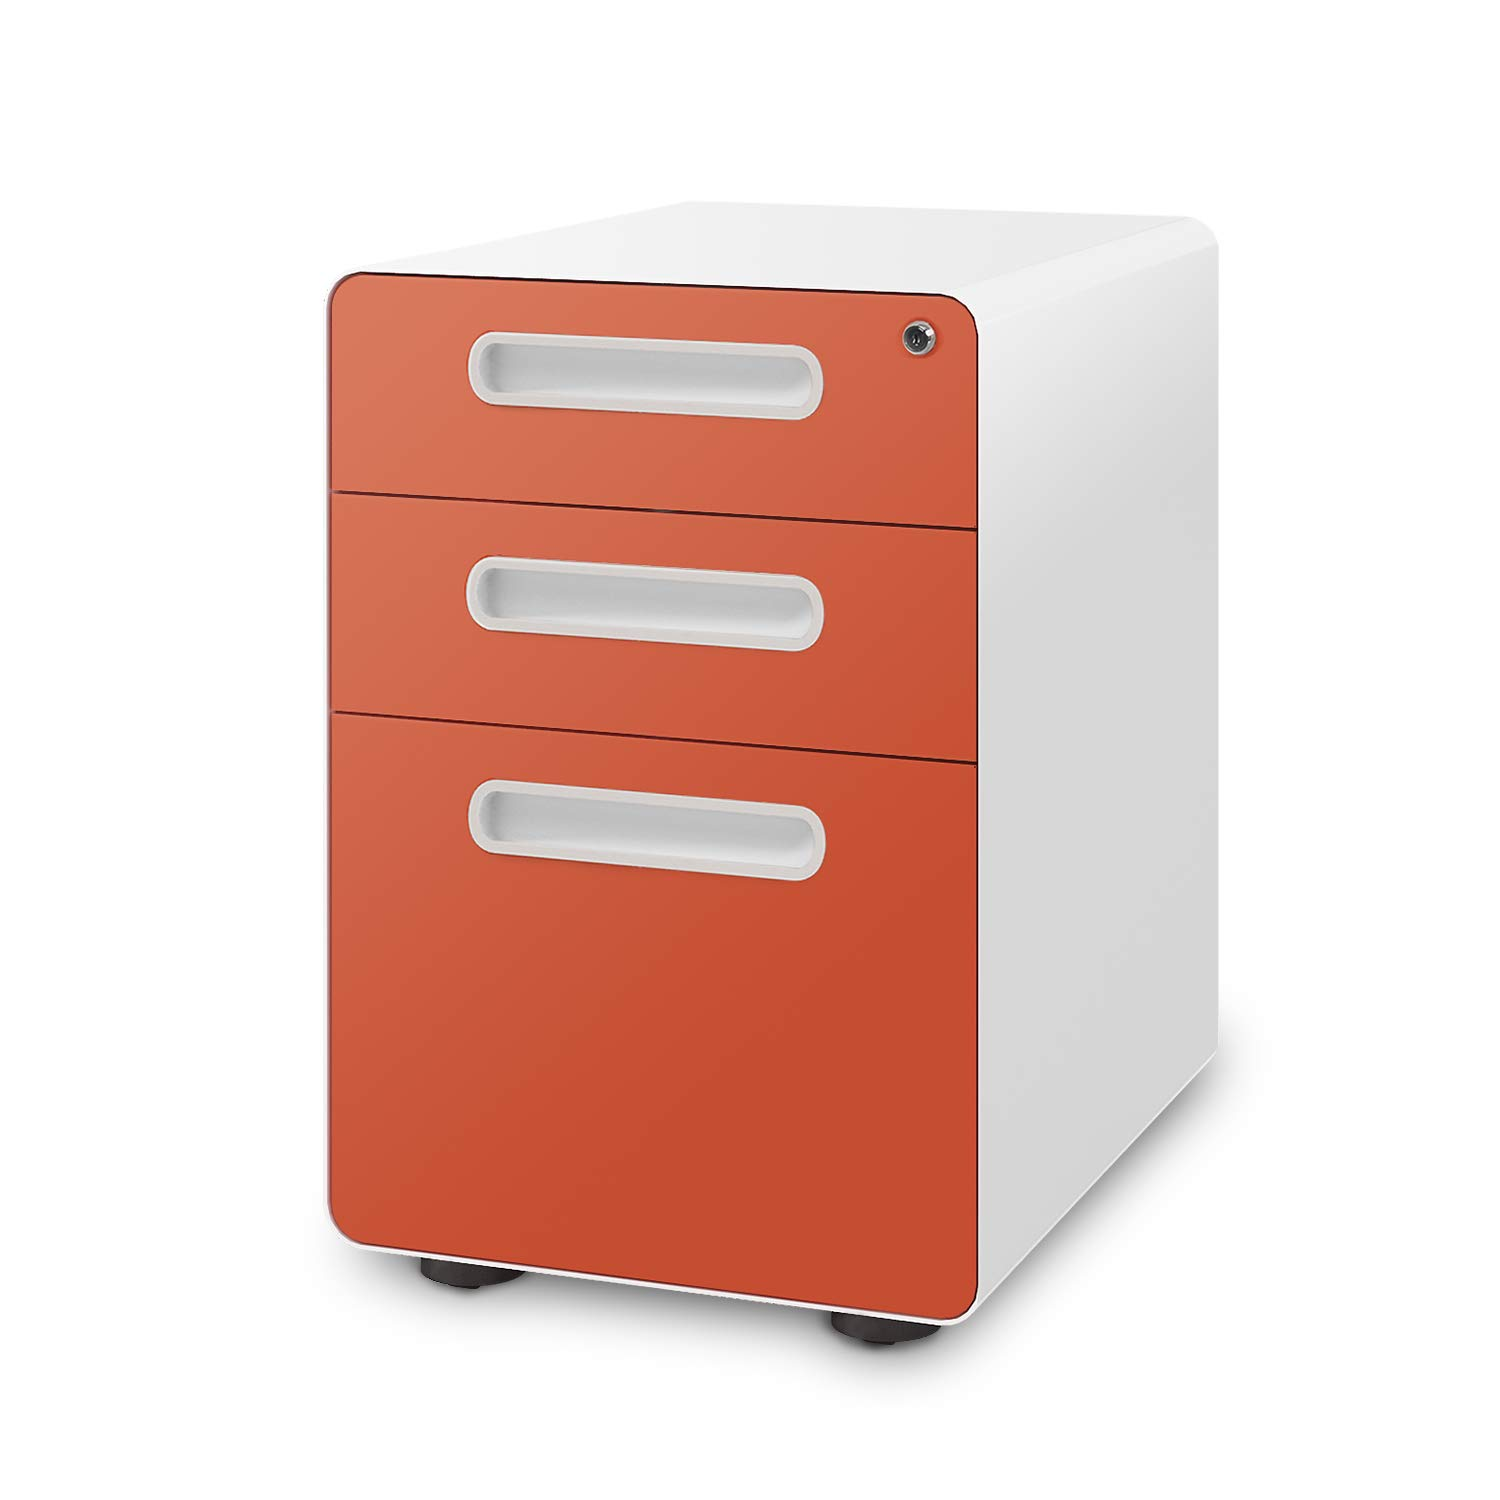 DEVAISE 3-Drawer Mobile File Cabinet with Anti-tilt Mechanism,Legal/Letter Size (Orange)